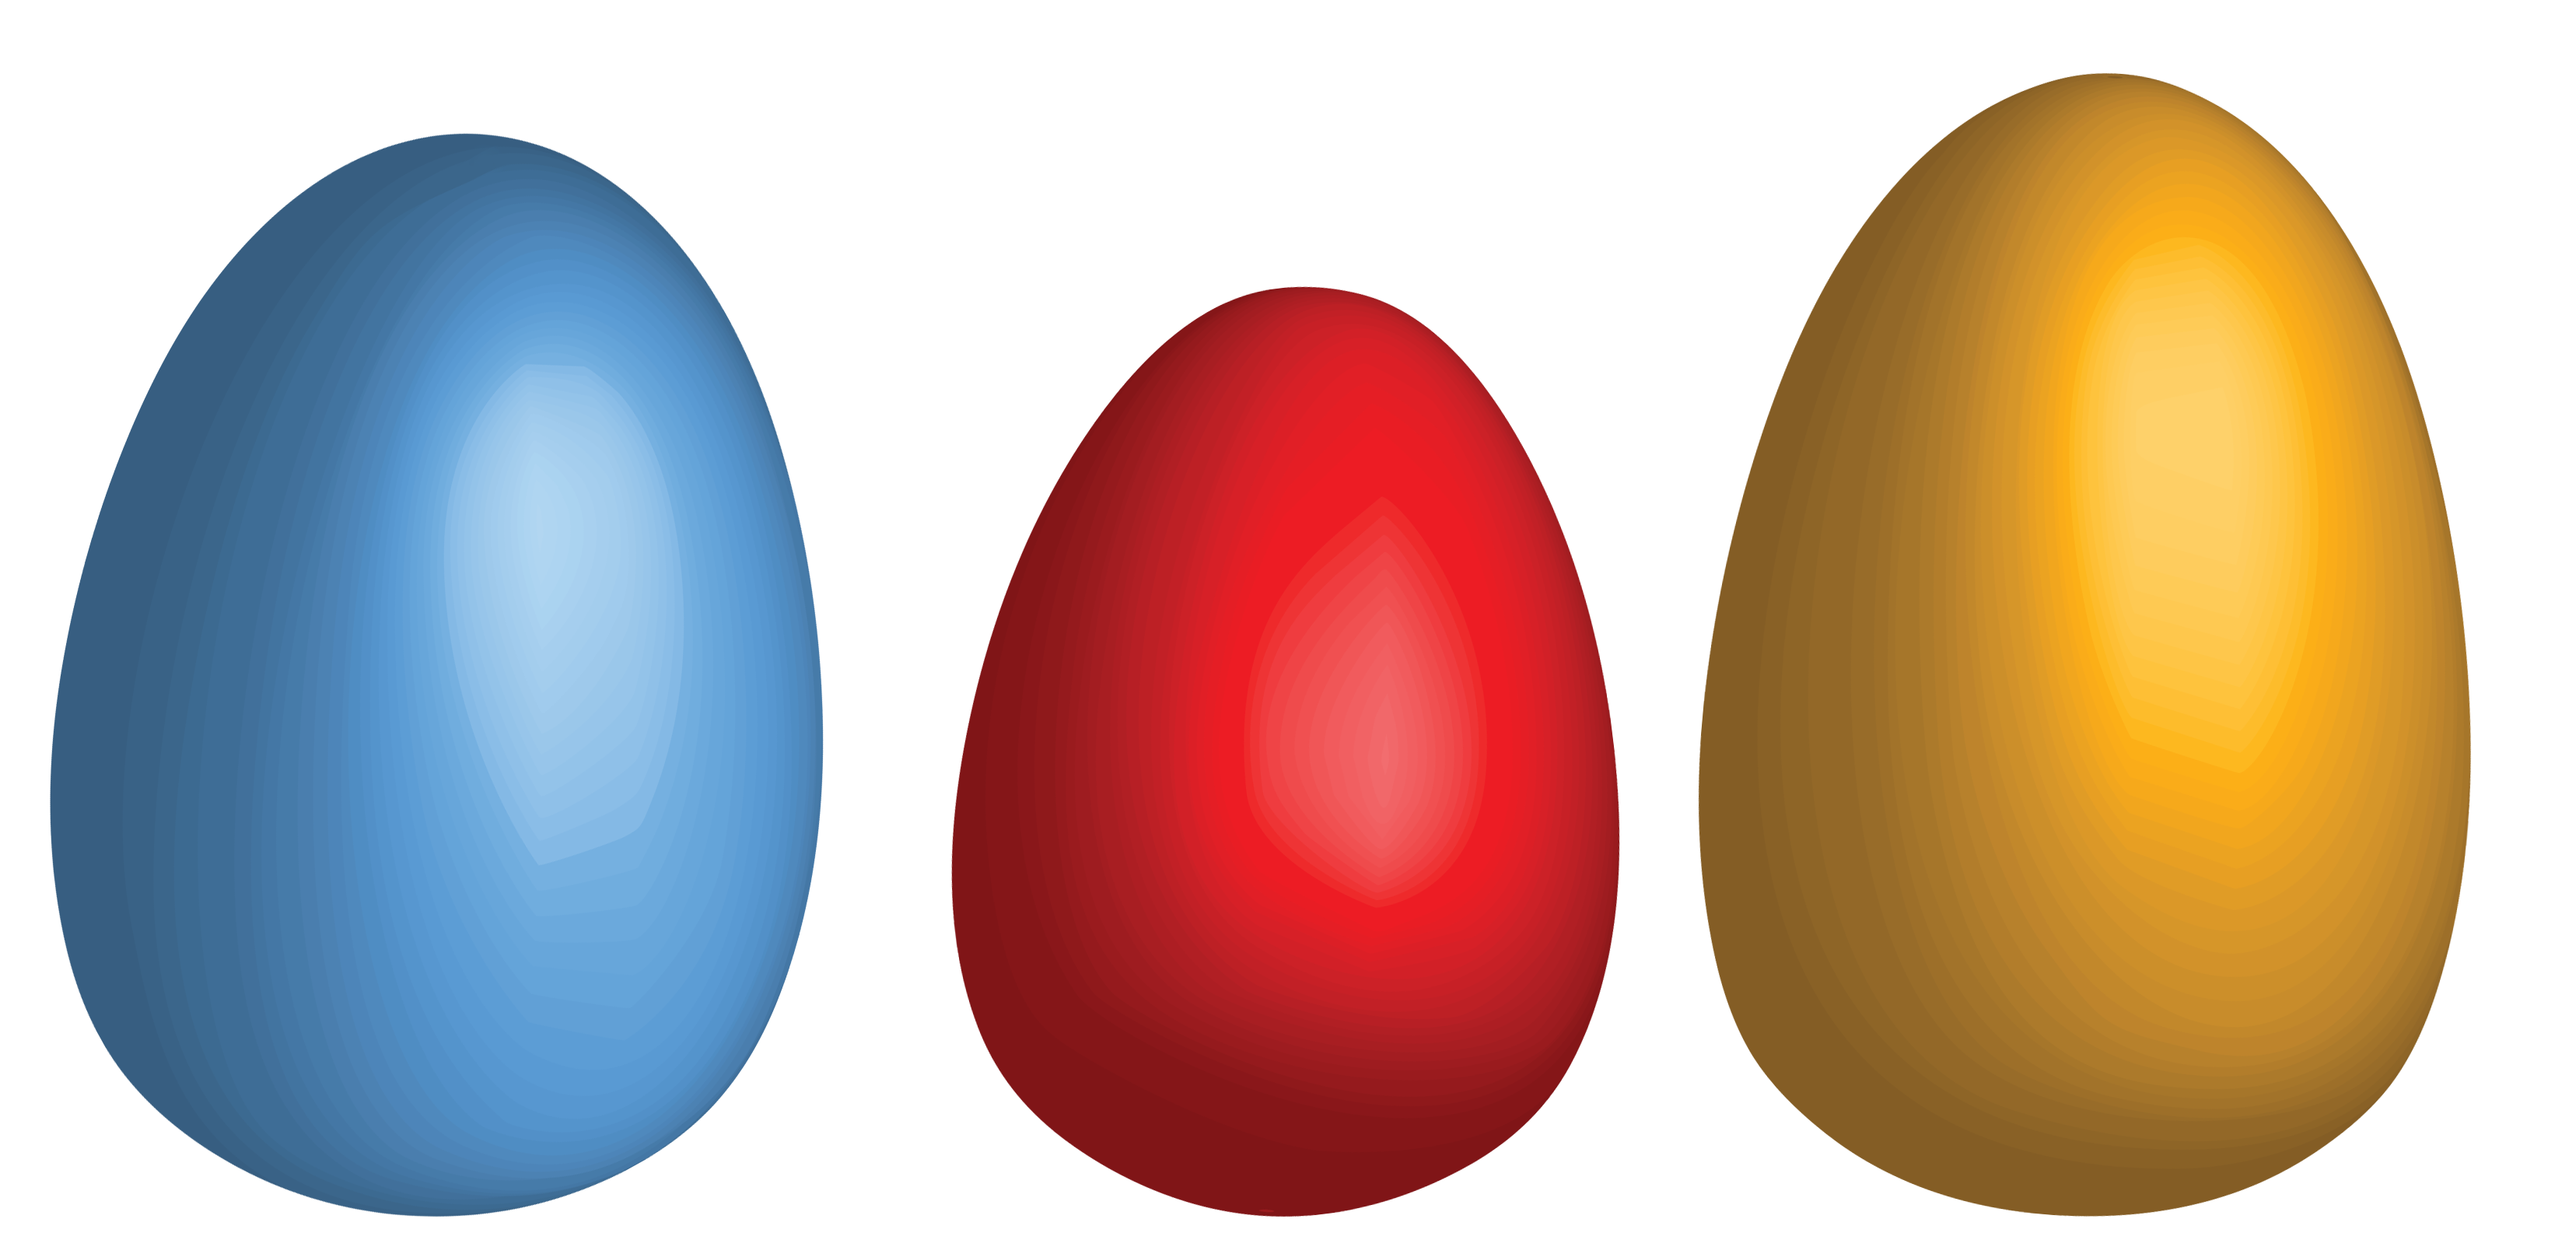 Three Eggs PNG Image